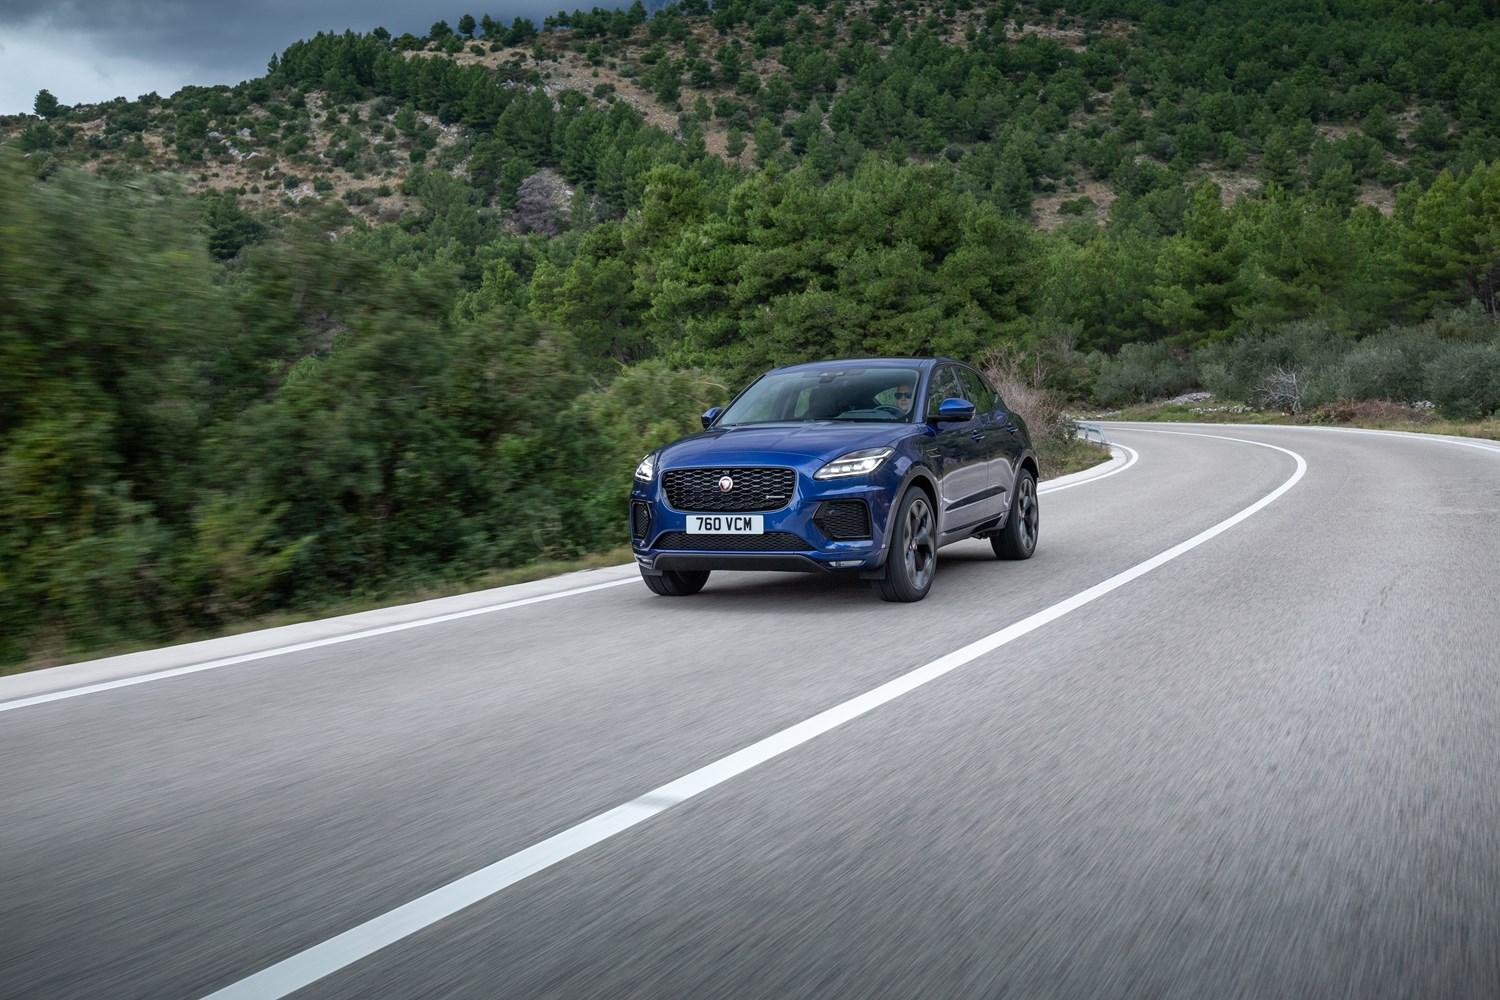 Bleu Jaguar E-PACE driving along a mountain road with green mountains in the background